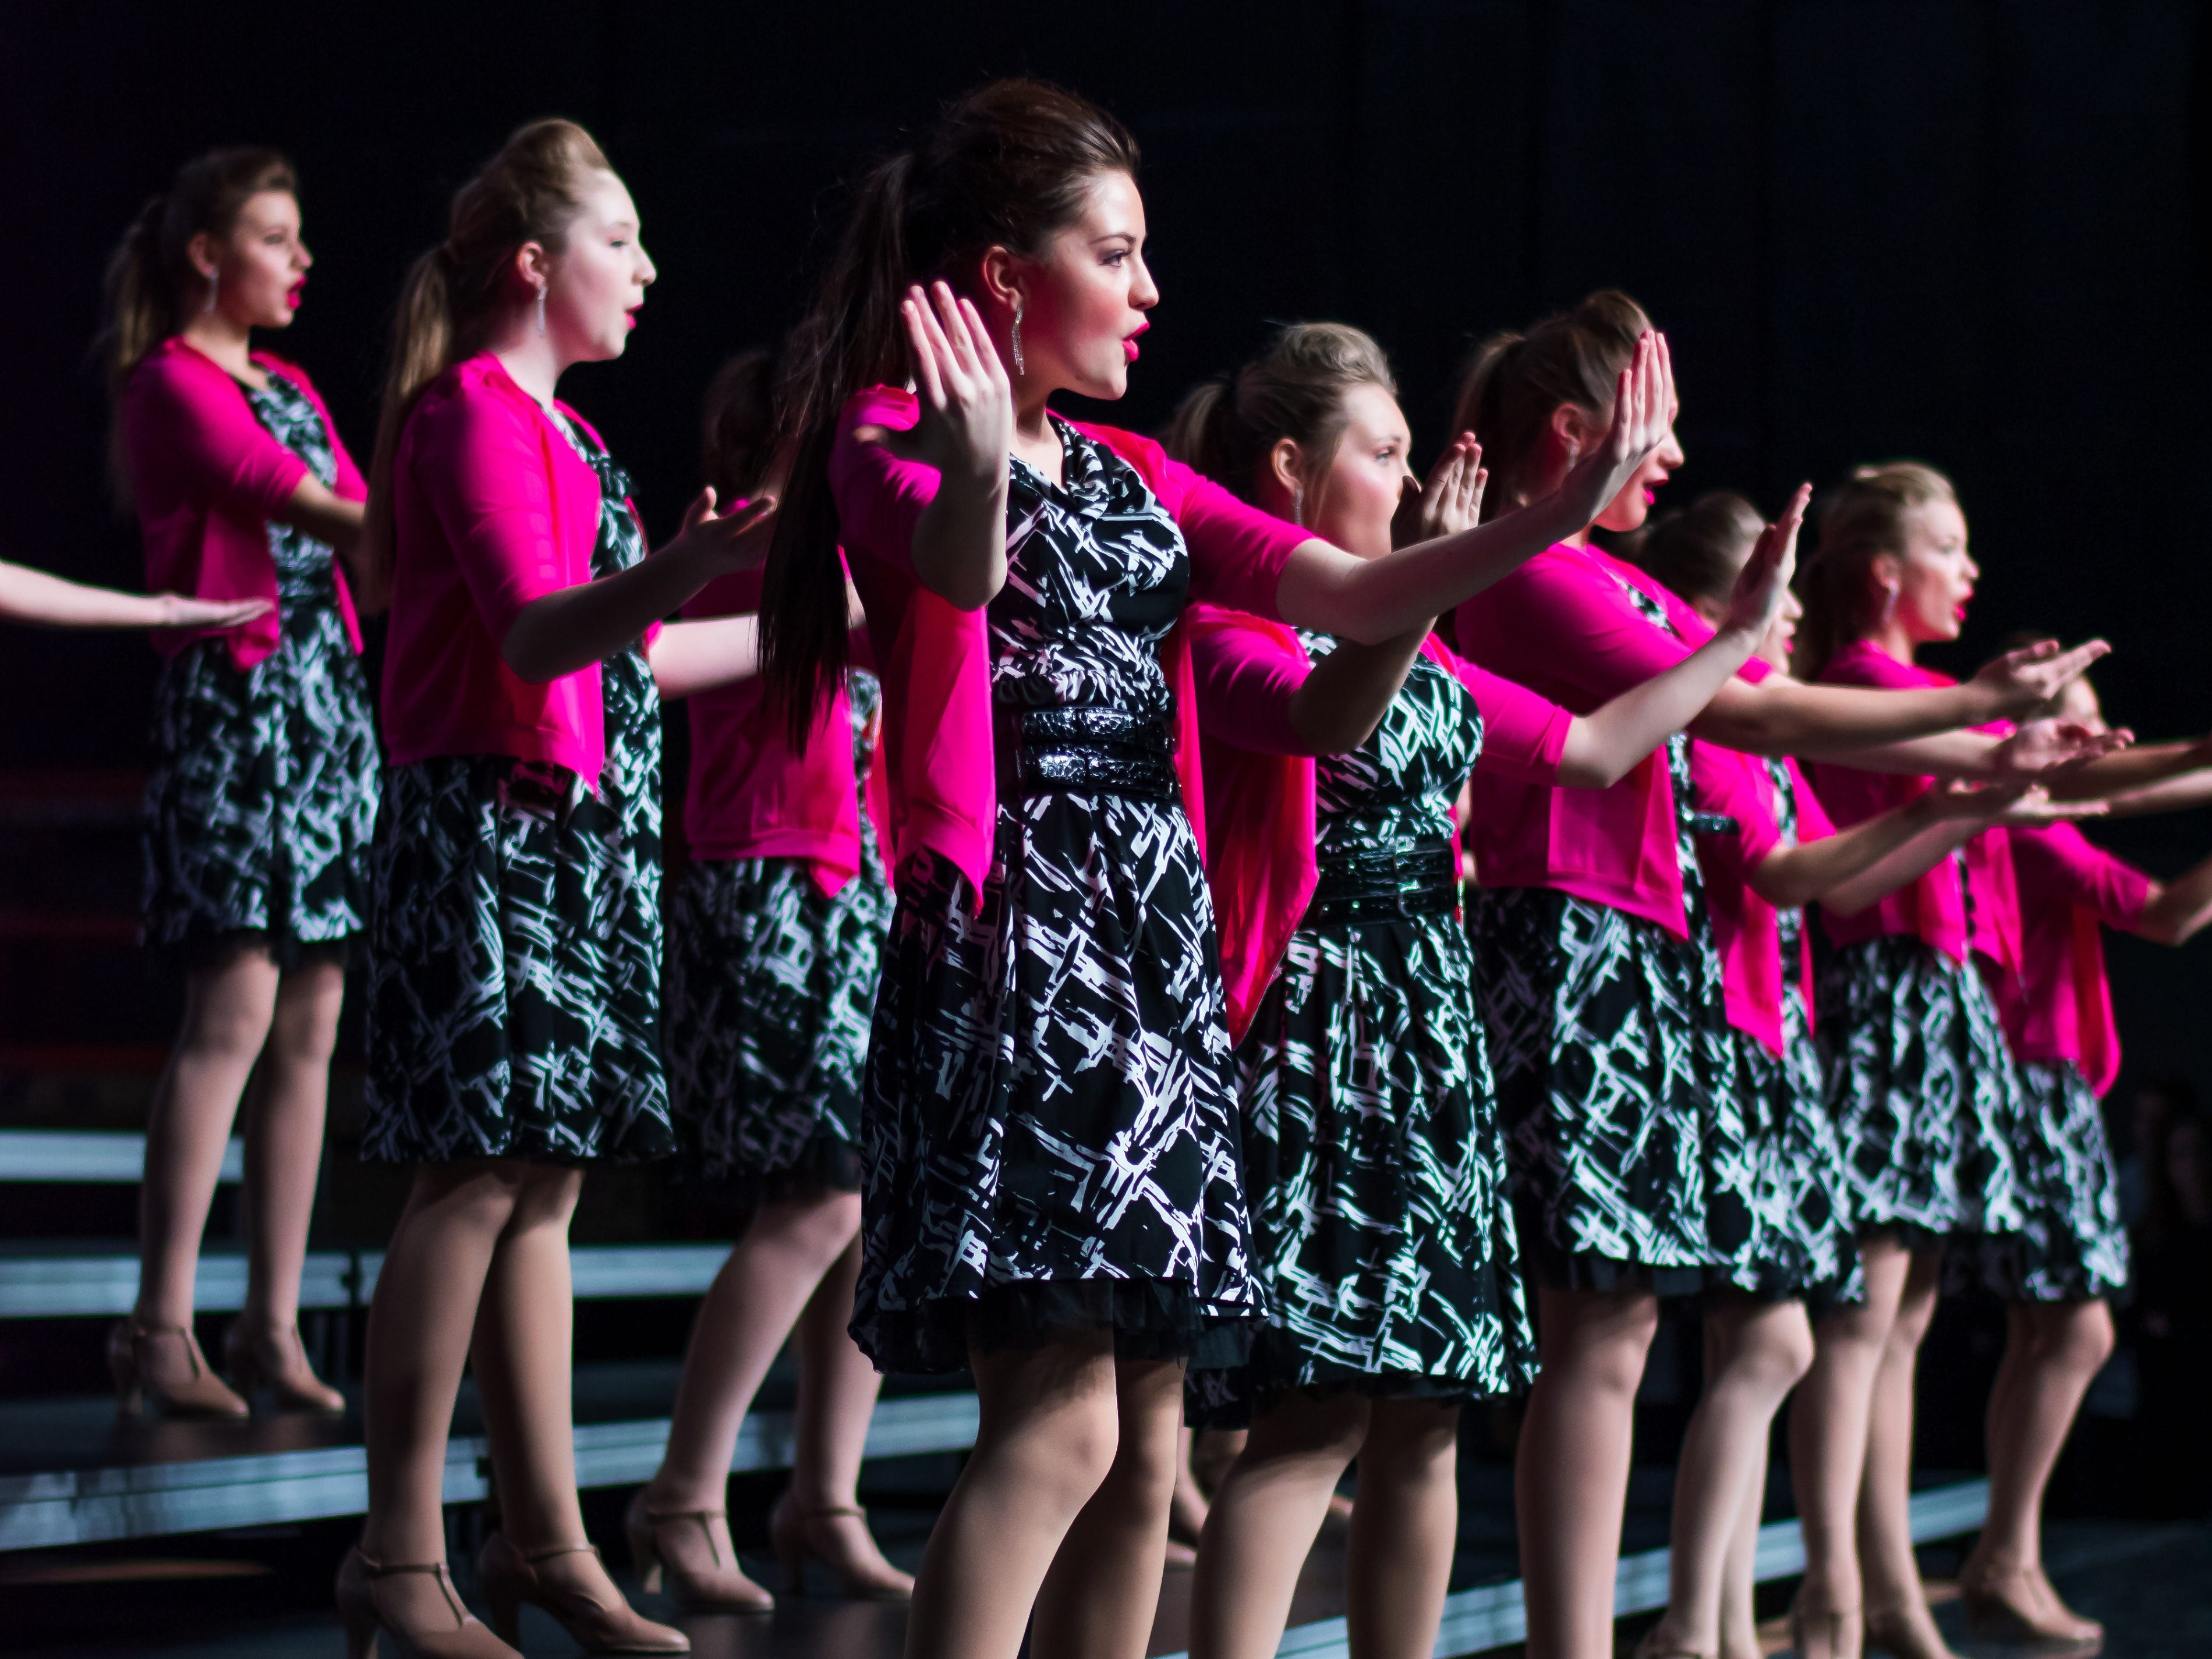 Des Moines Christian show choir group Salt, Co. performs on Saturday, Jan. 12, 2019 at the Waukee Star Struck Show Choir Invitational in the Waukee High School Field House.